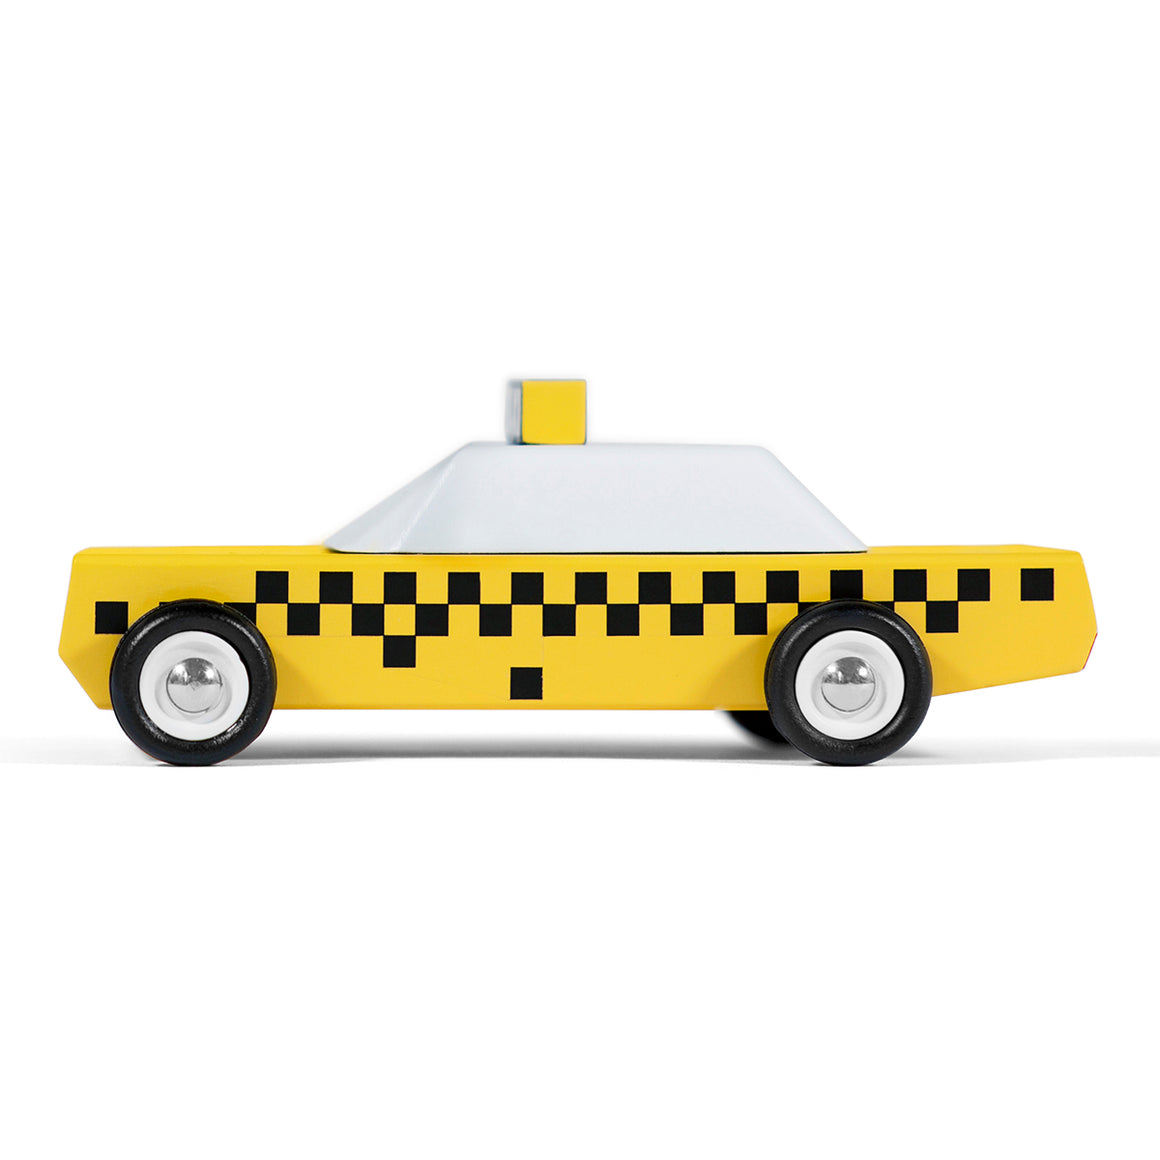 A Toy car in the style of an American taxi cab in yellow white and black.